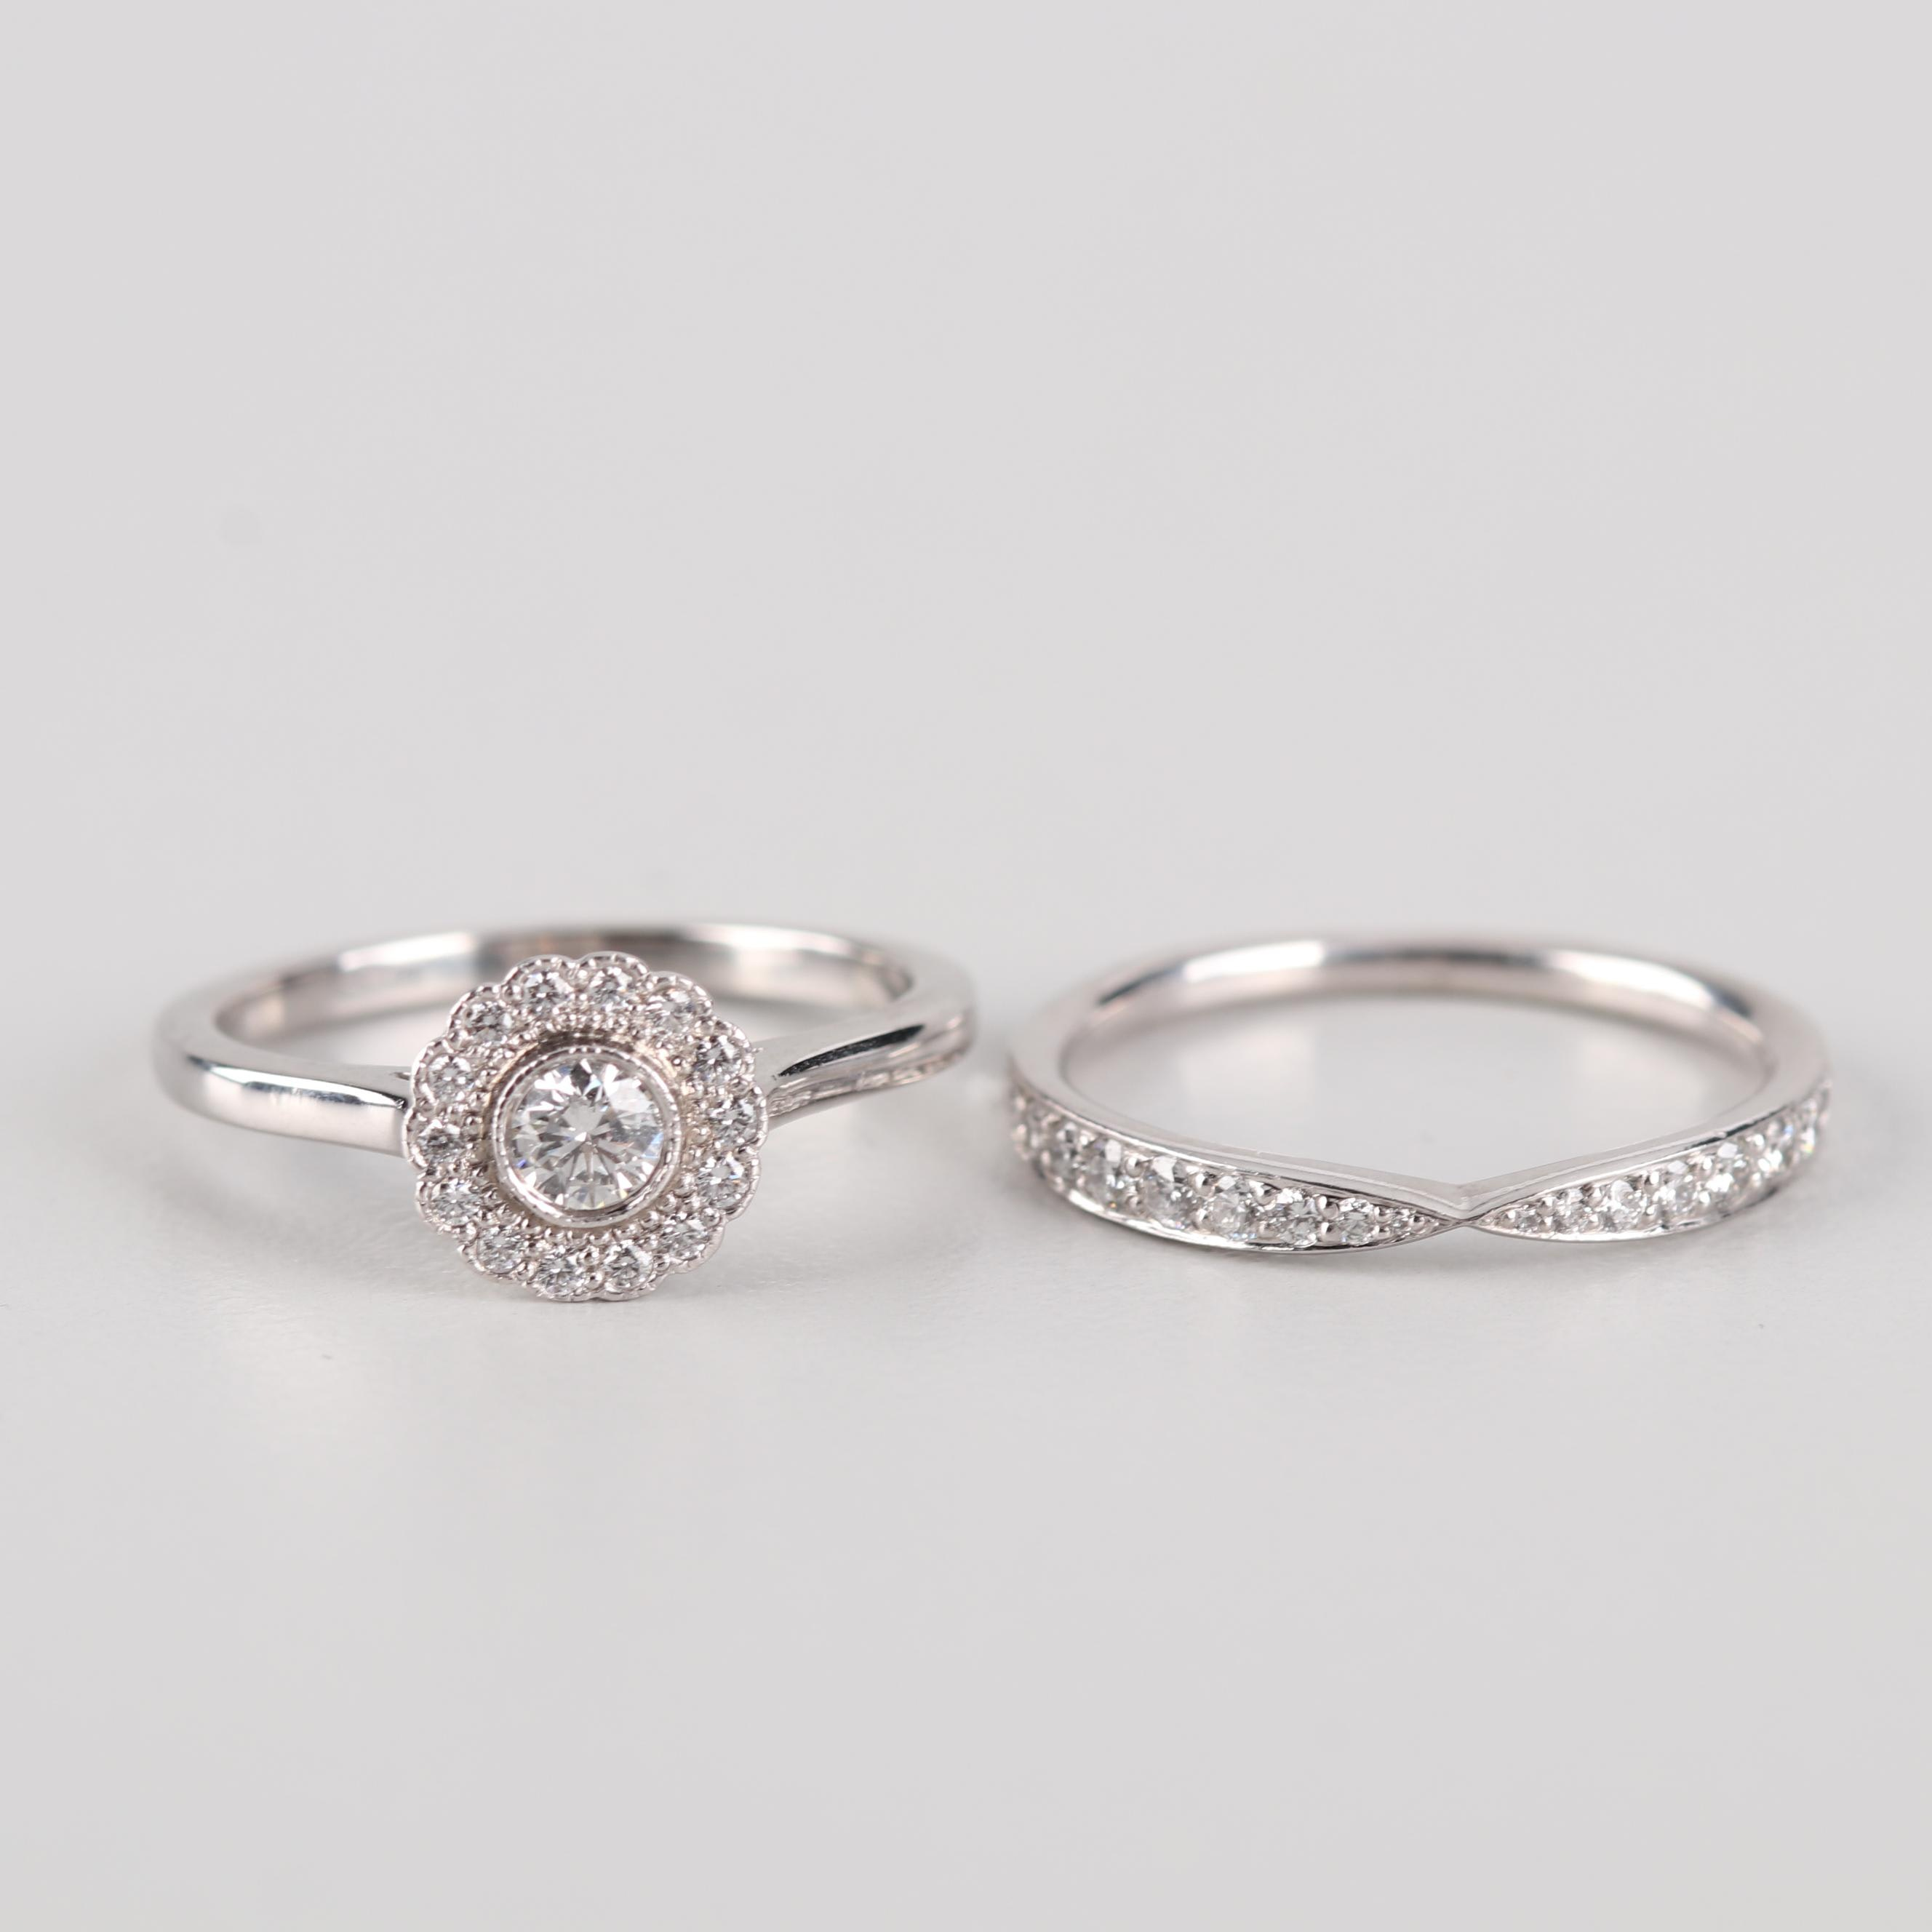 Tiffany & Co. Platinum Diamond Bridal Set